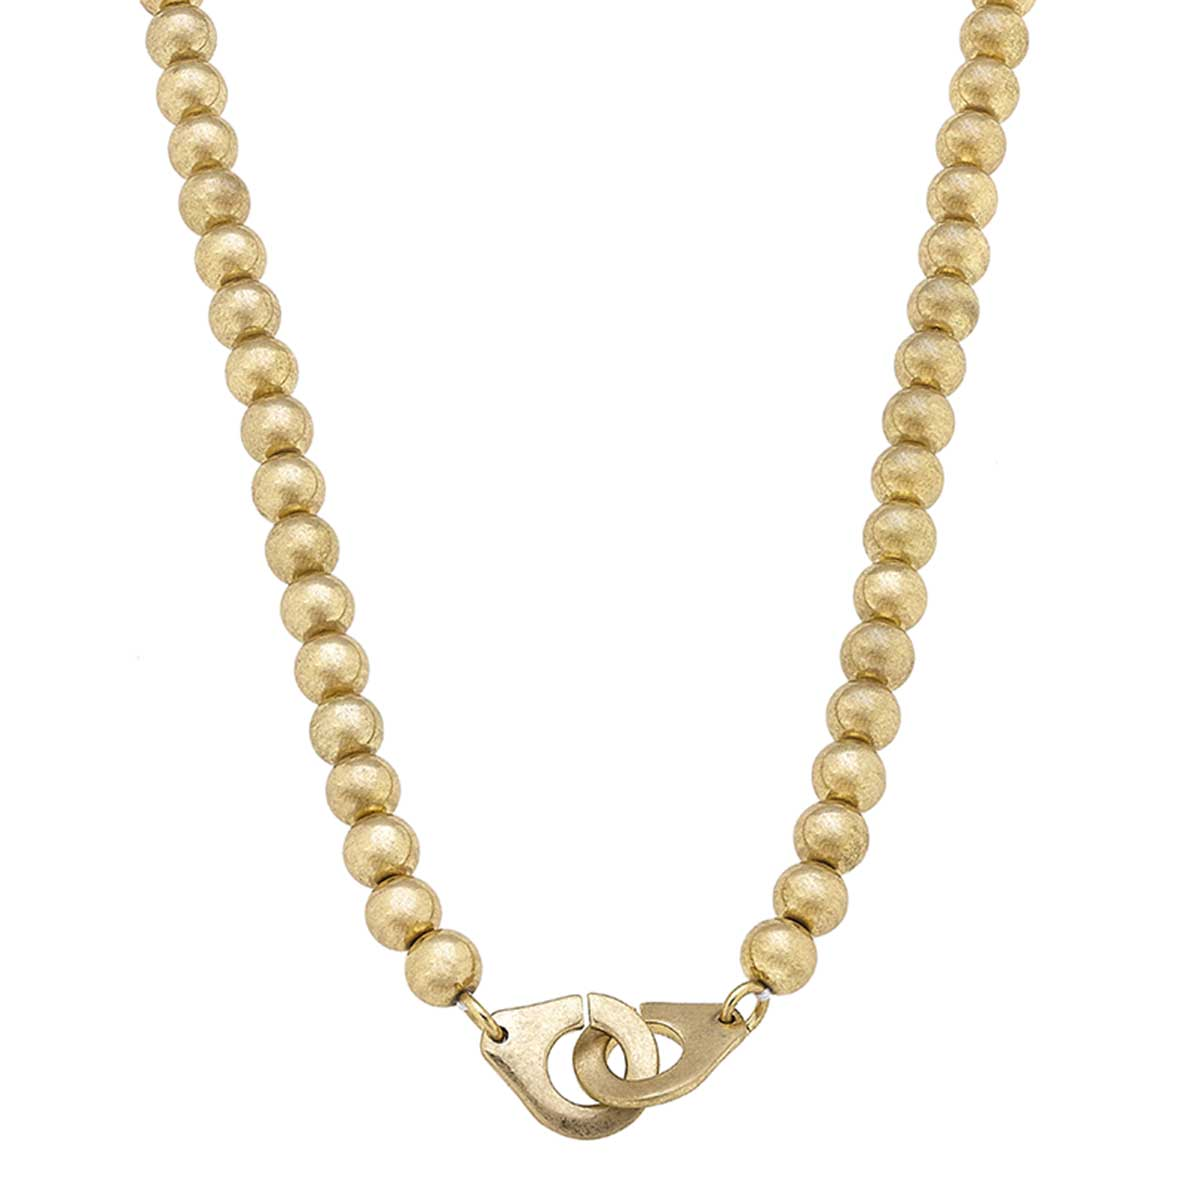 Nyla Handcuff Ball Bead T-Bar Necklace in Worn Gold